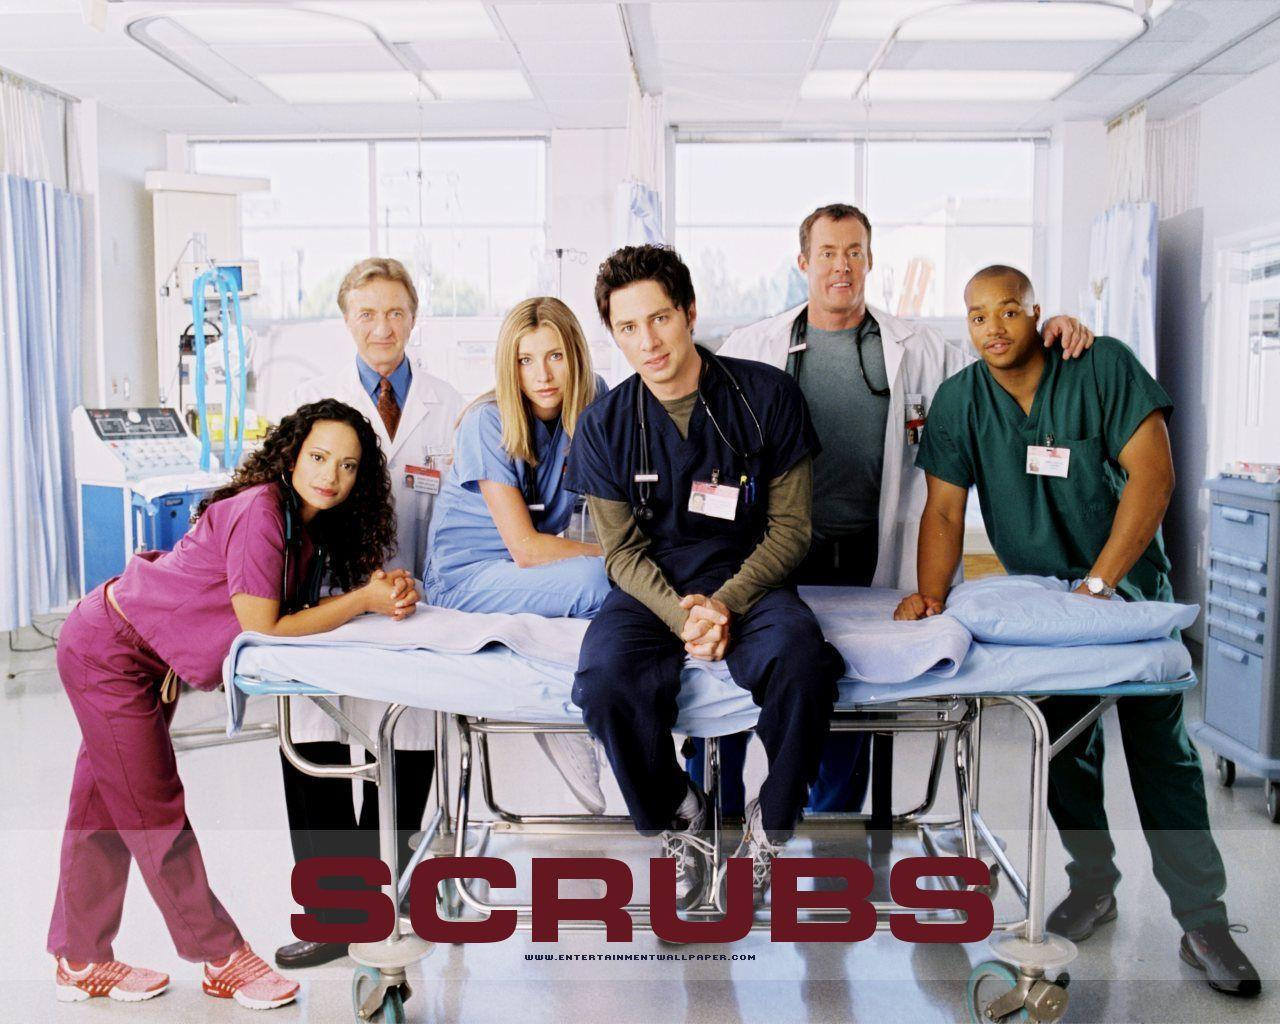 Incredible HDQ Cover Wallpaper's Collection: Scrubs Wallpapers